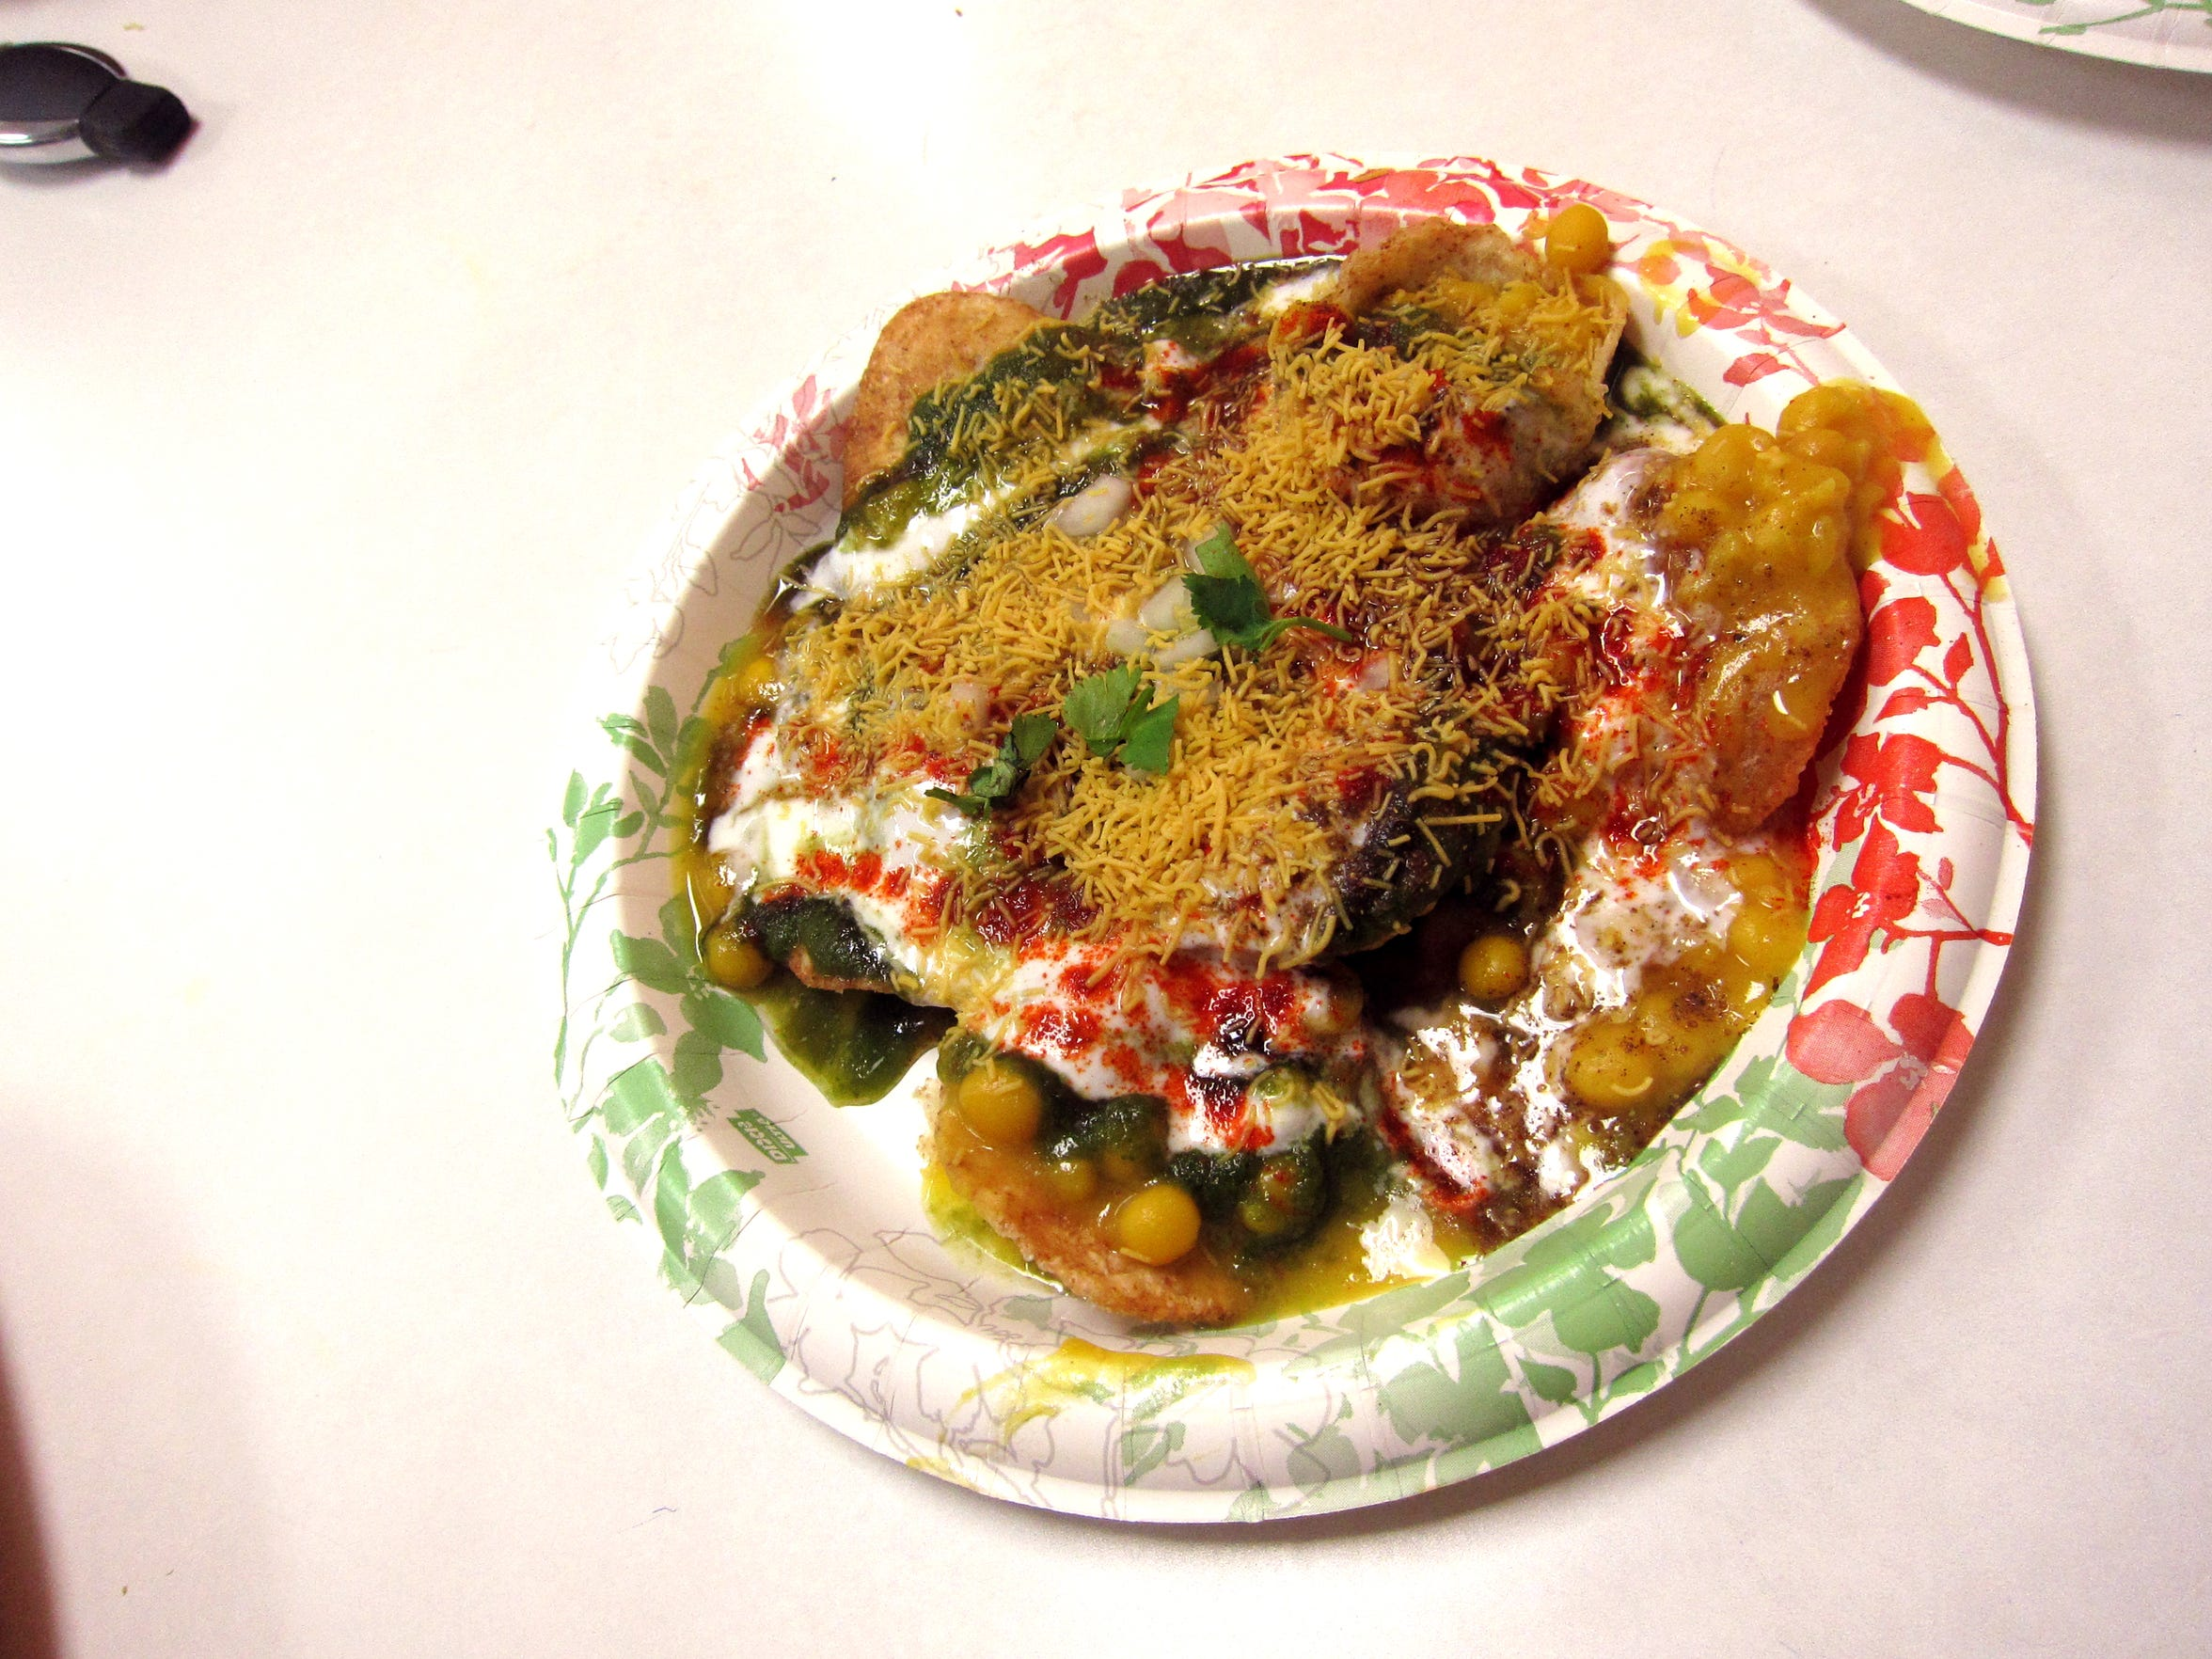 Papri chaat from Little India in Tempe.